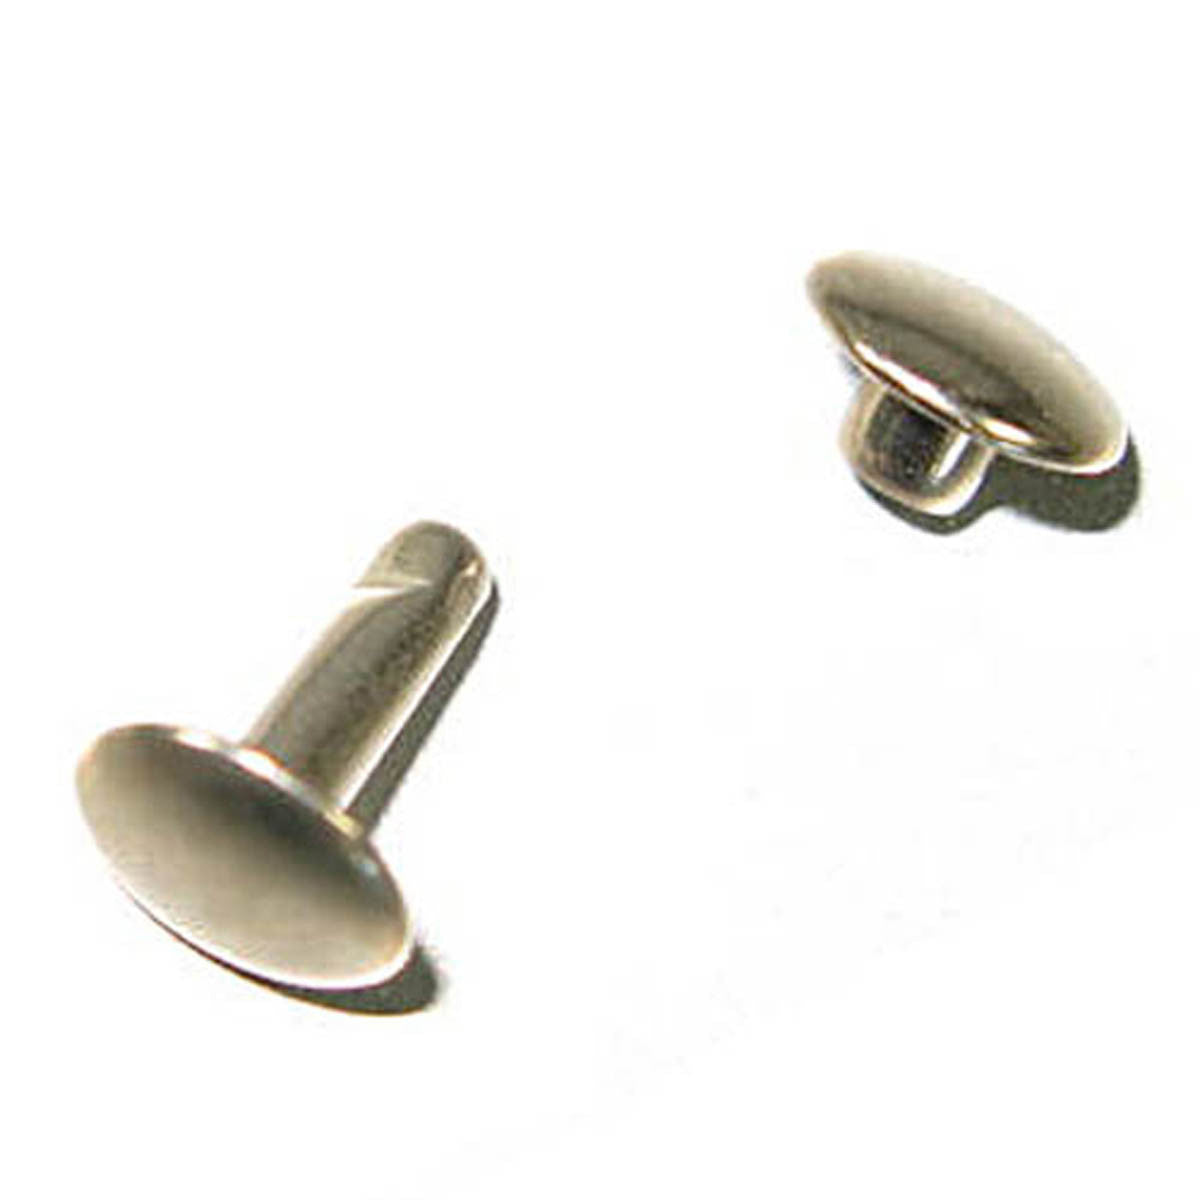 Double Cap Rapid Rivets 7mm Cap 10mm Post - 2 Colors (3310-2)